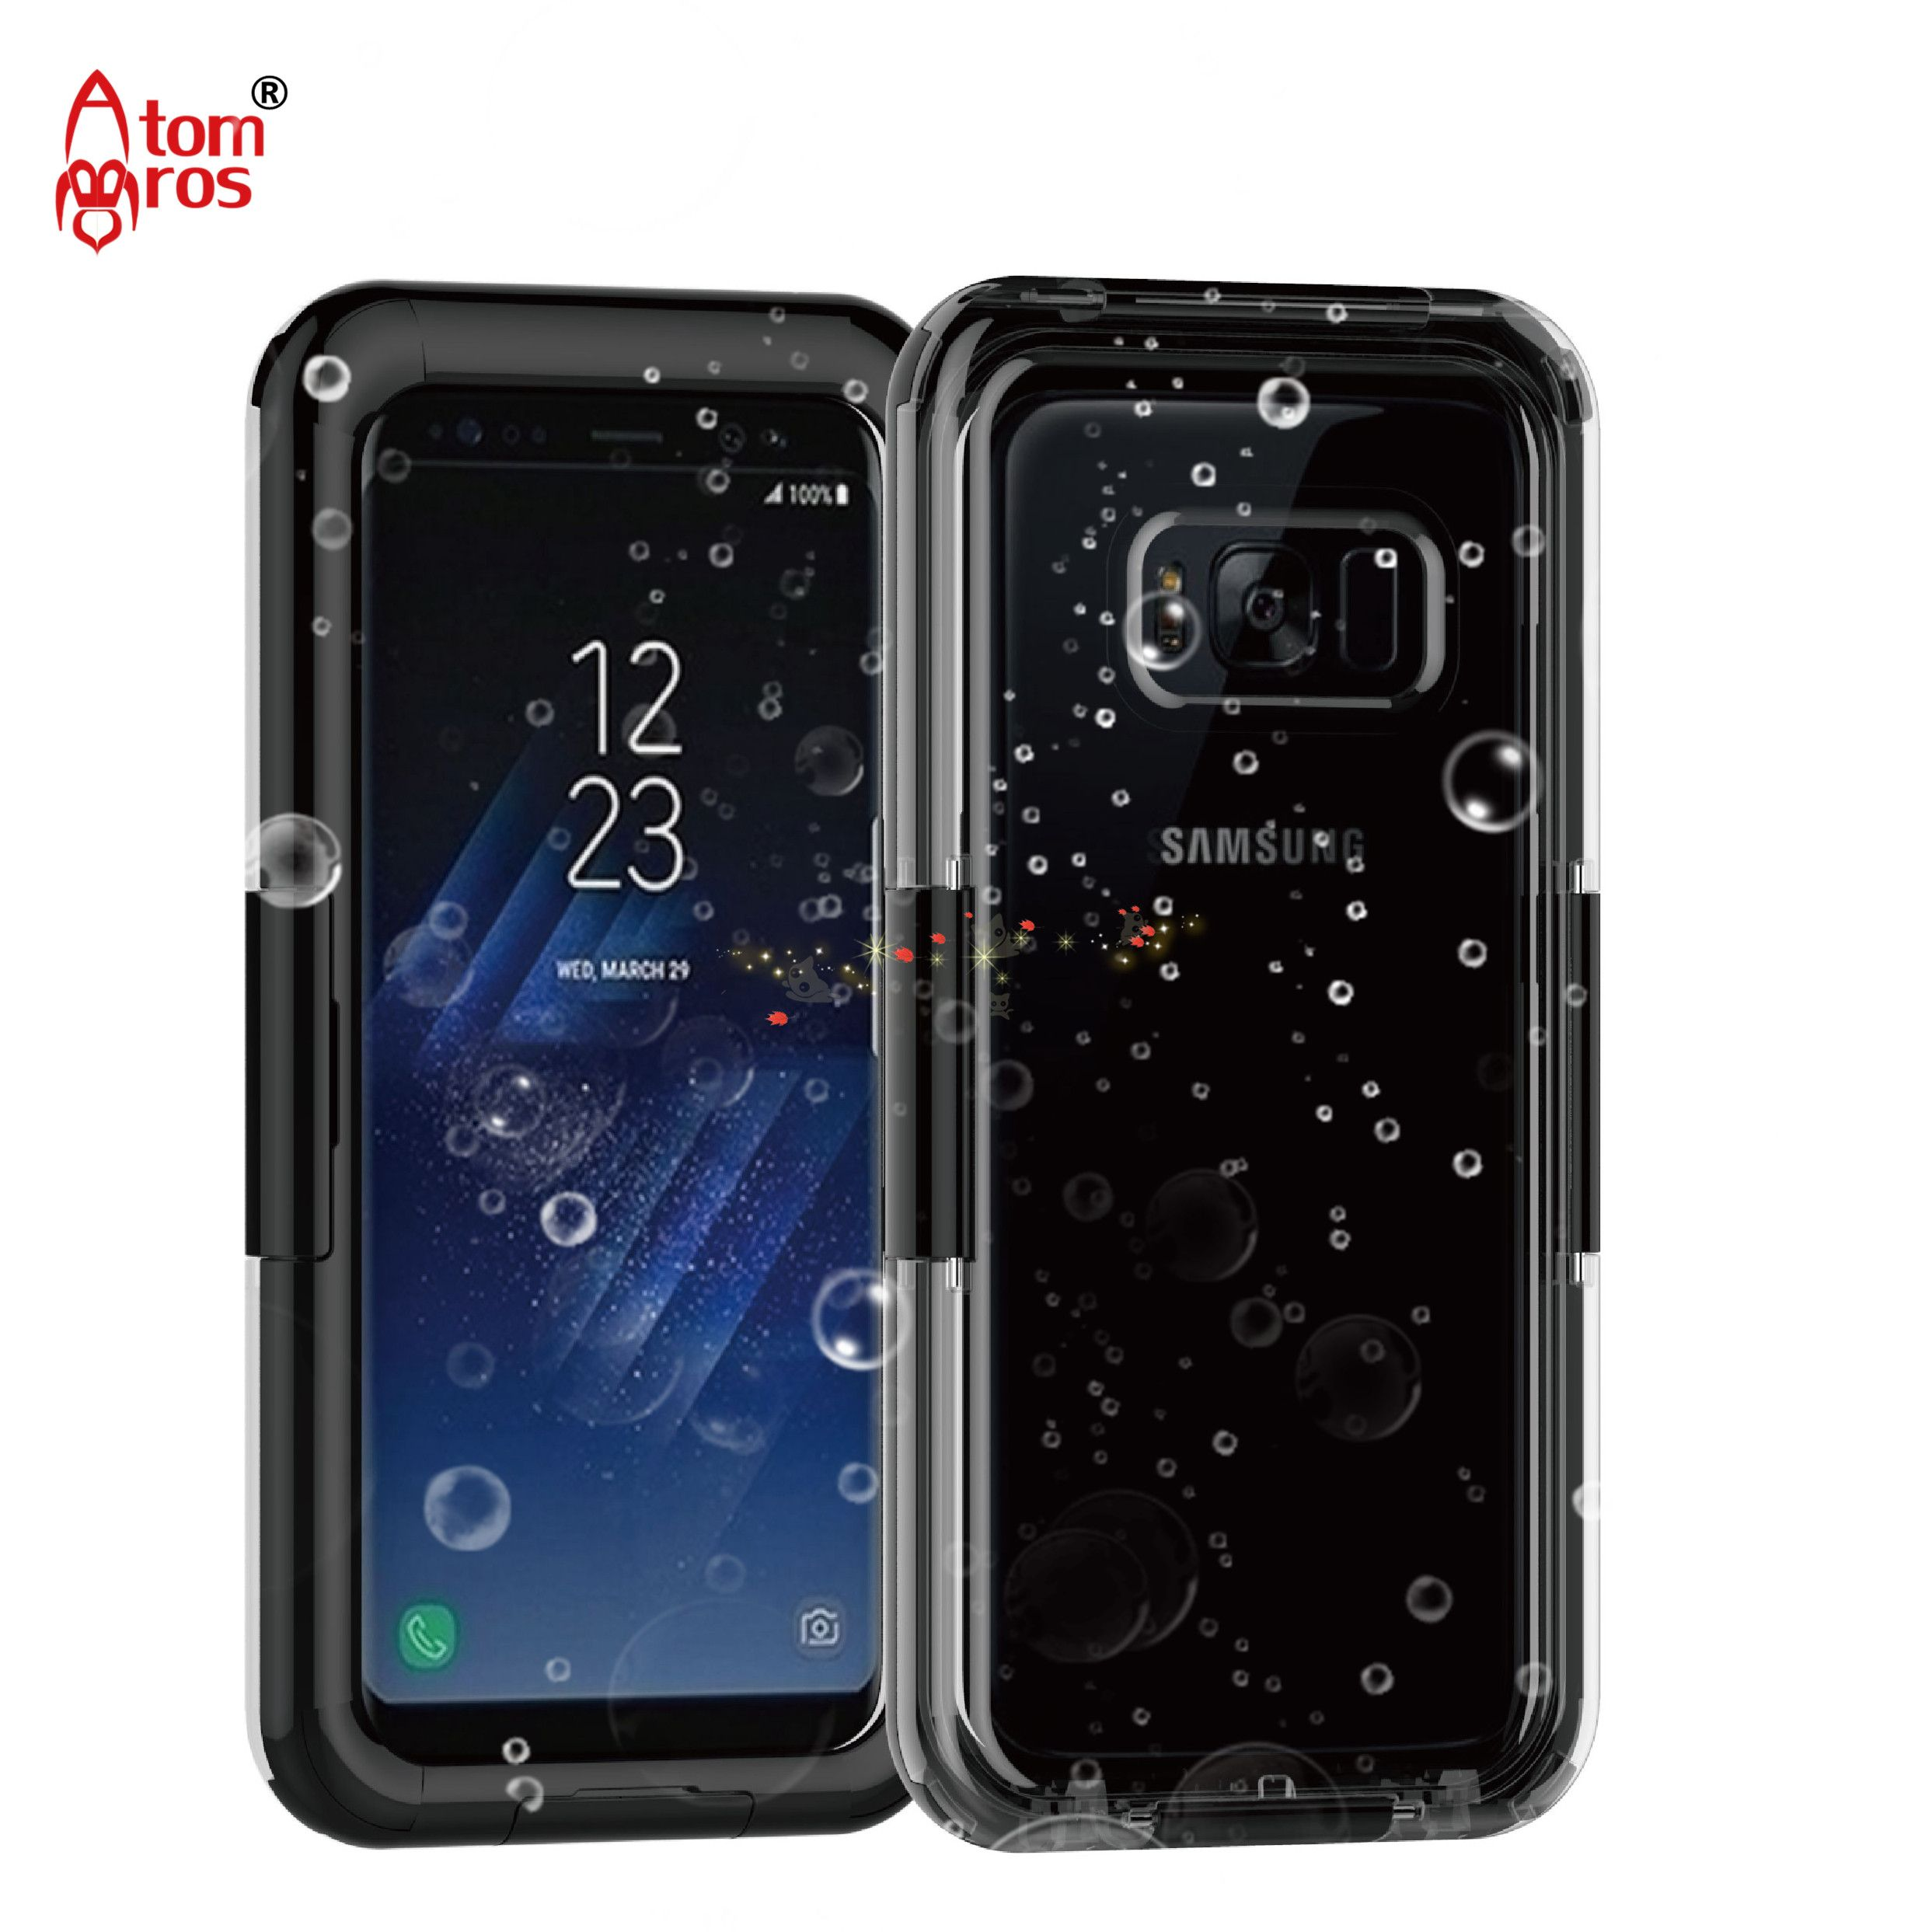 IP68 100% Waterproof Cover Case For Samsung Galaxy S8 / S8 Plus Case Underwater 6M Plastic Protective Shockproof Dirtproof Cases